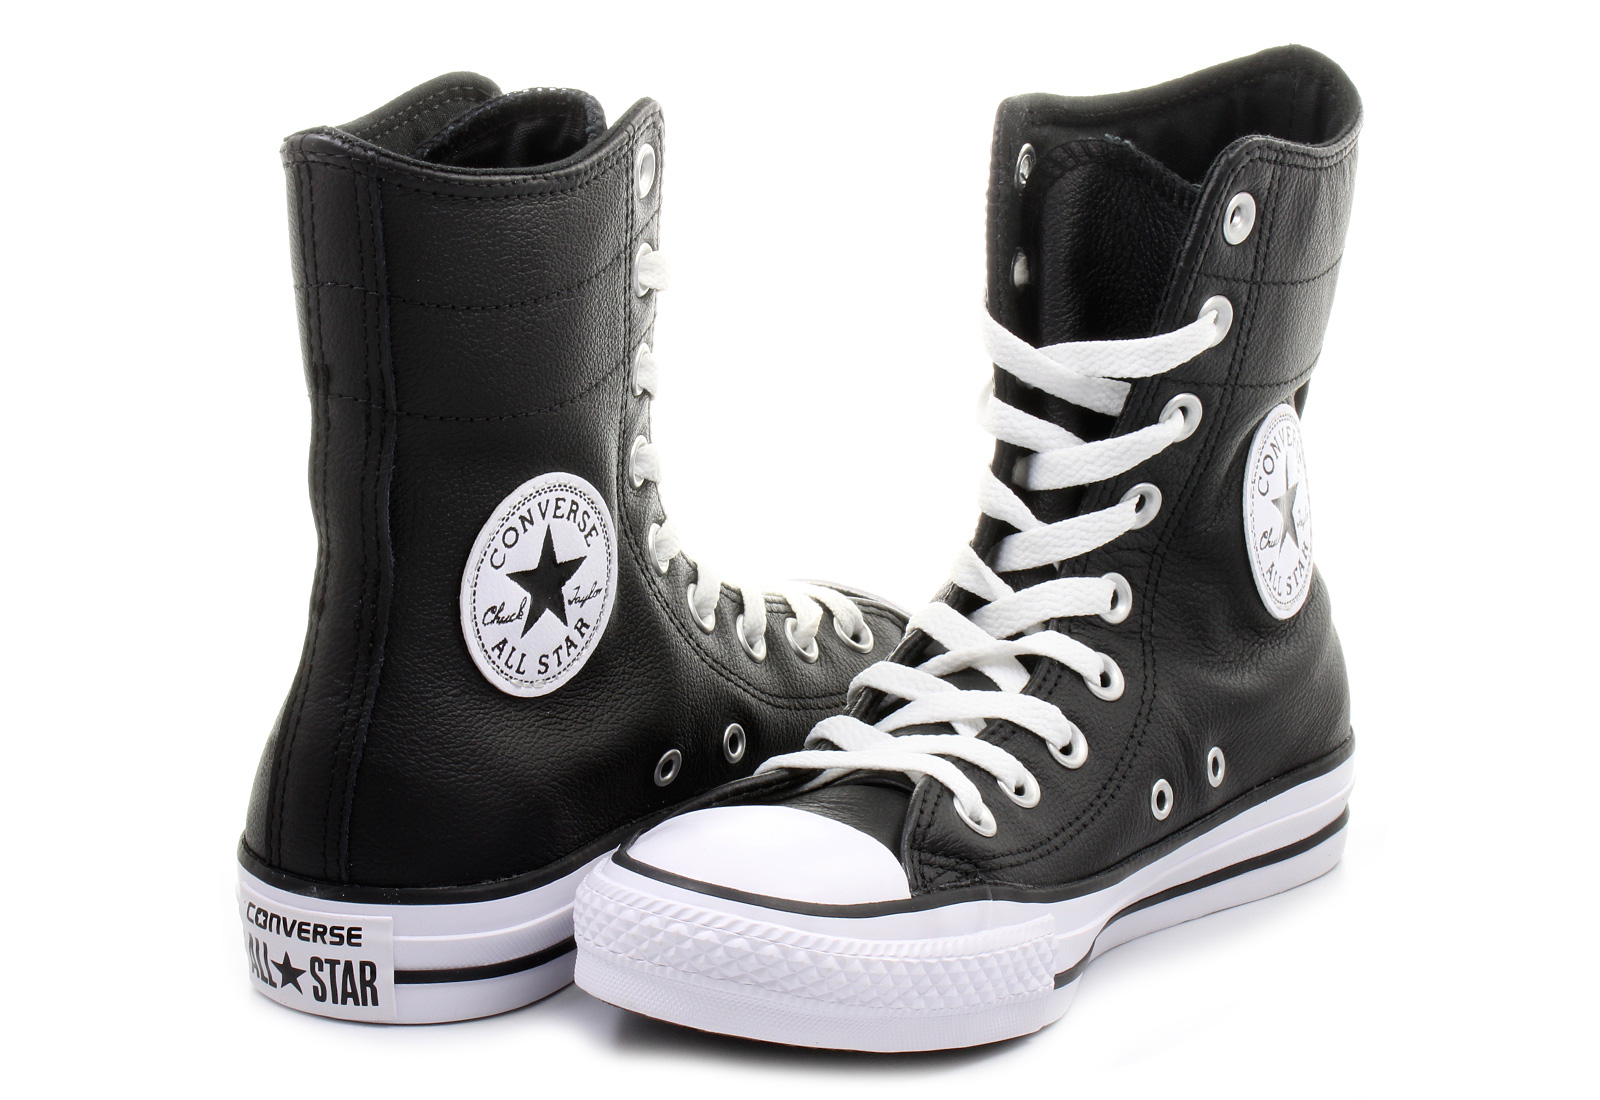 a8dad46c2d4 Converse Sneakers - Chuck Taylor All Star Hi-rise Leather Hi ...